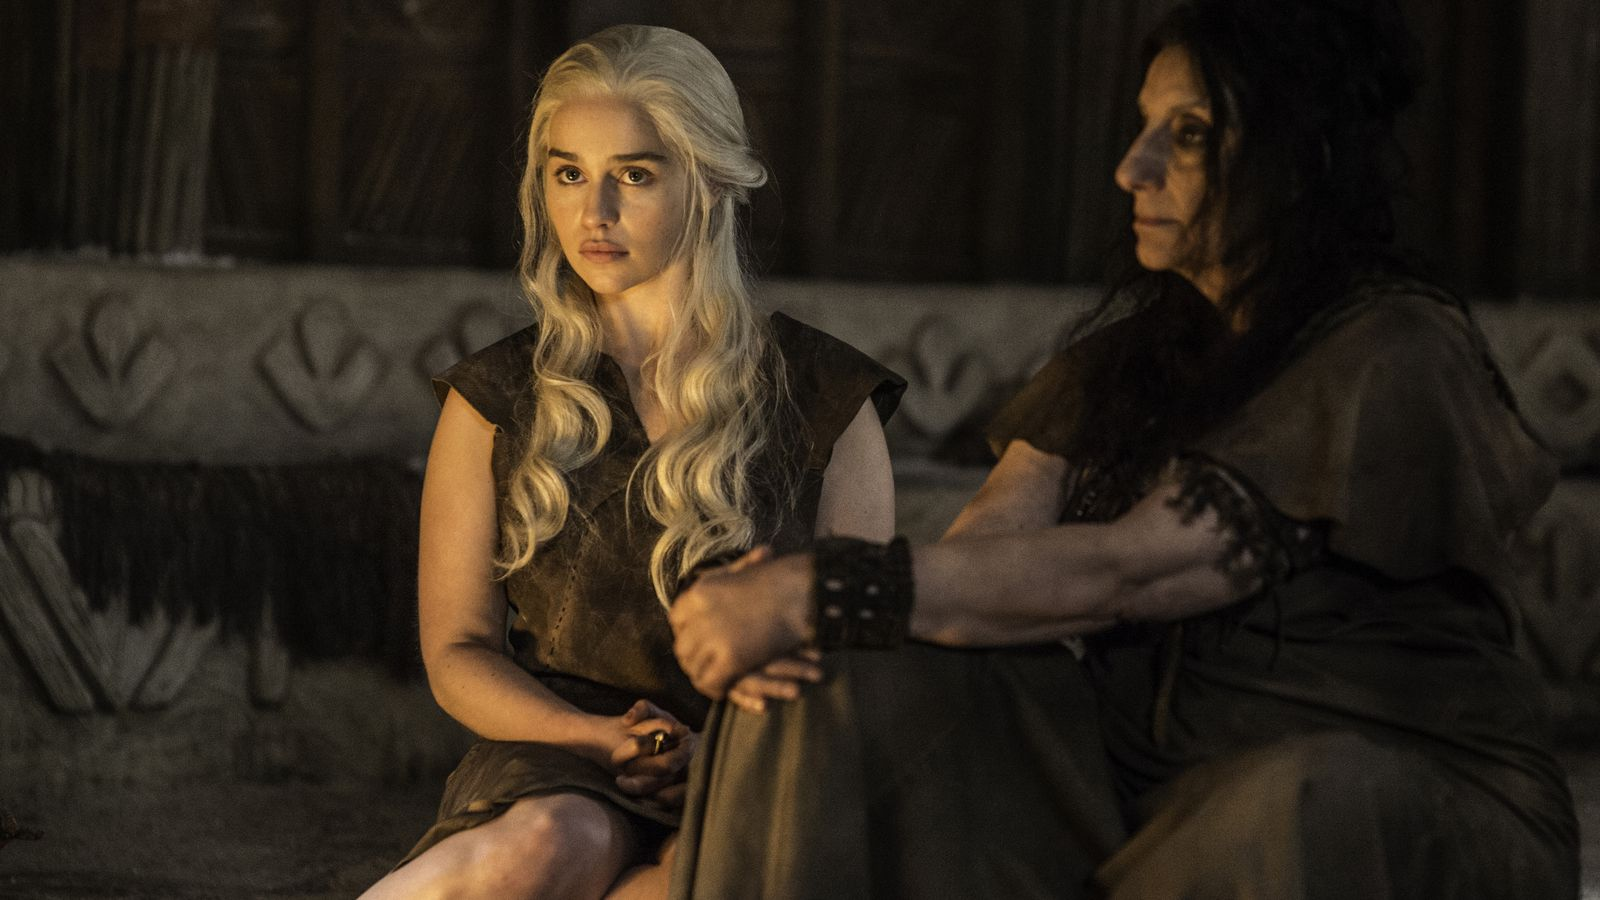 HBO Nordic reportedly leaks new Game of Thrones episode